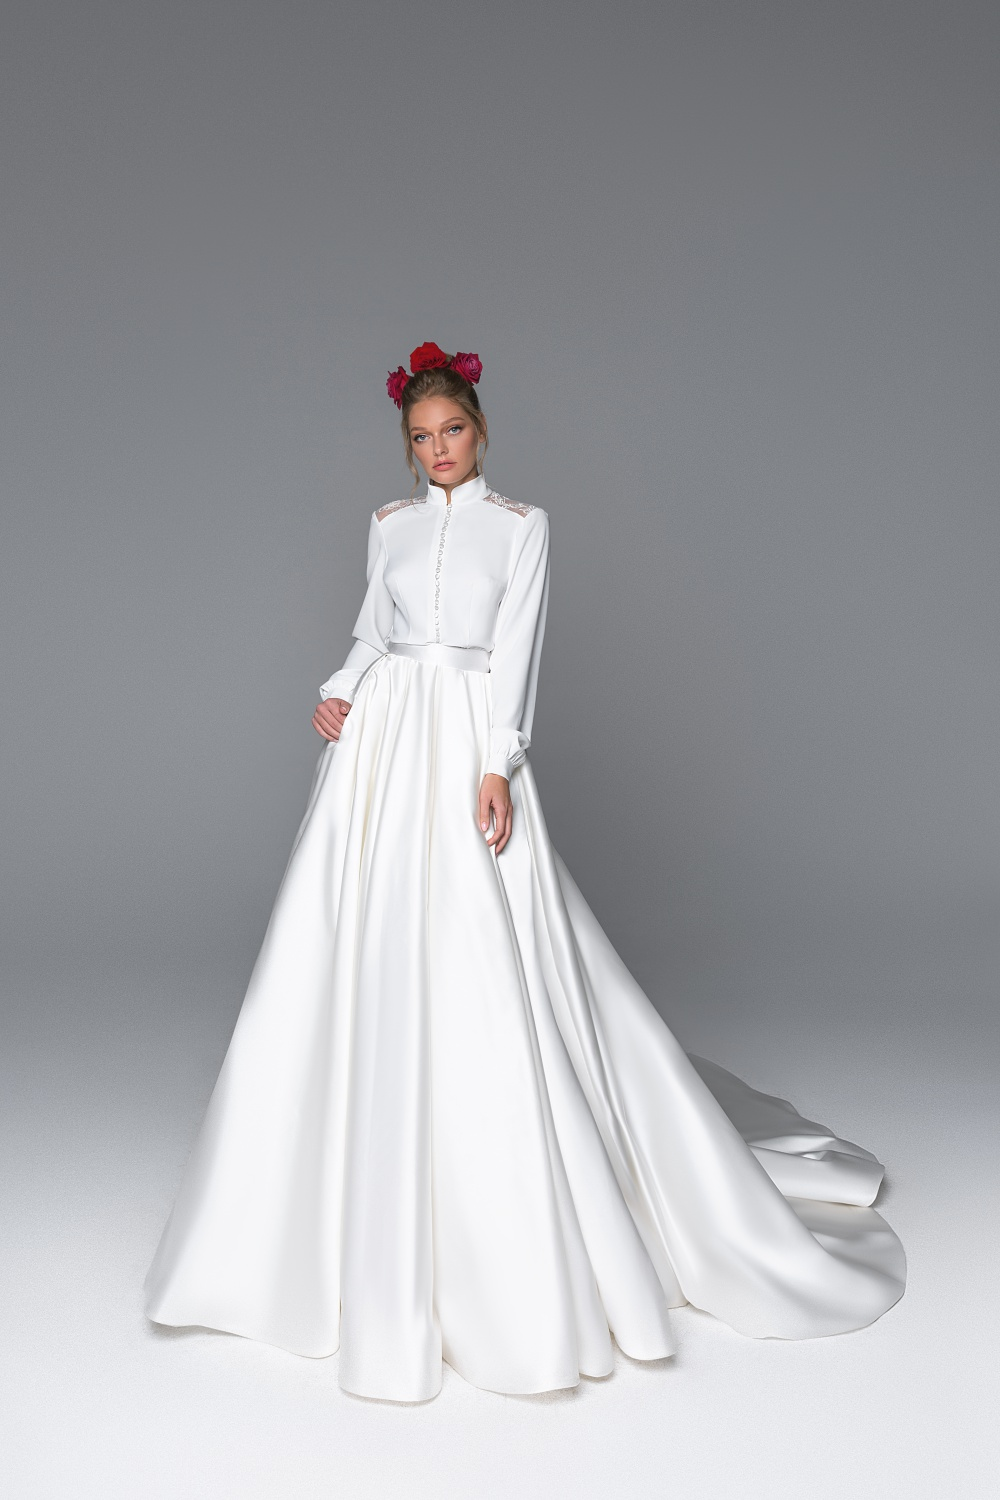 Eva Lendel Less is More Collection - Dominica